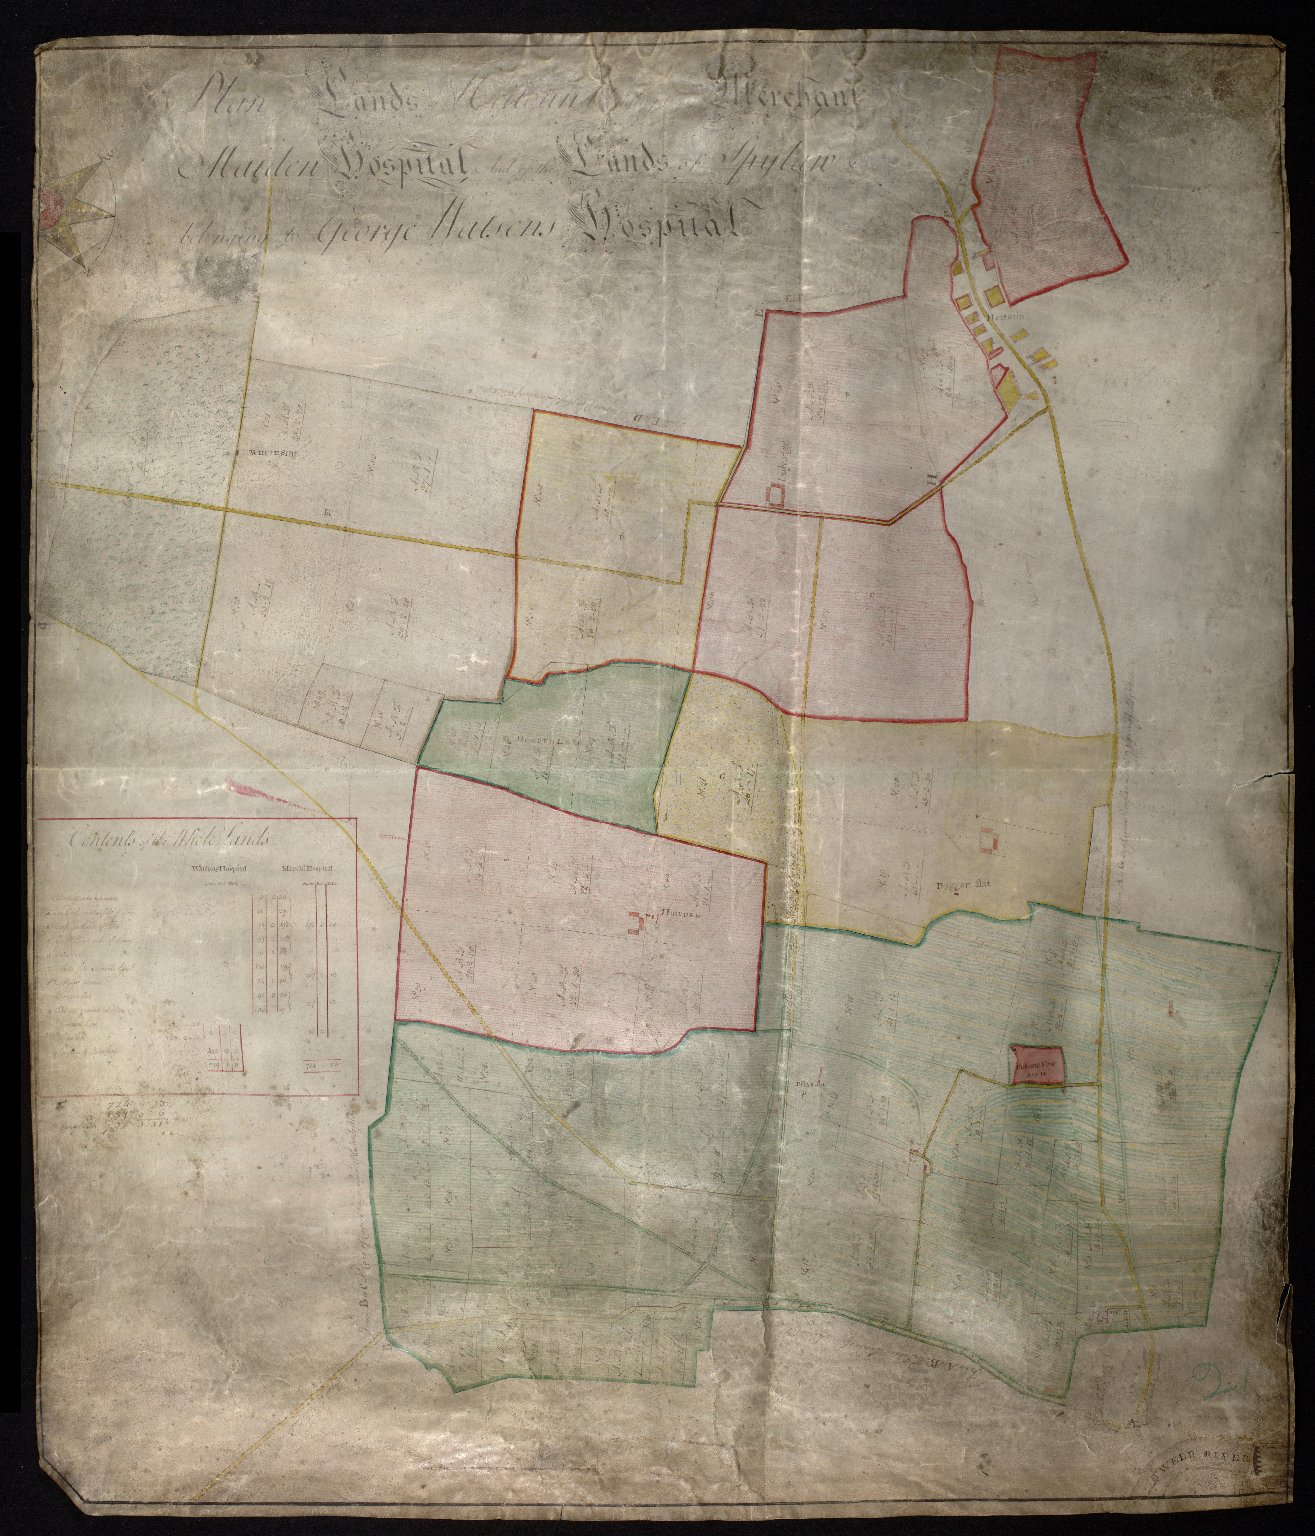 Plan Lands of Hieteun beonging to the Merchant Maiden Hospital and of Spylaw belonging to George Watsons Hospital [1 of 1]